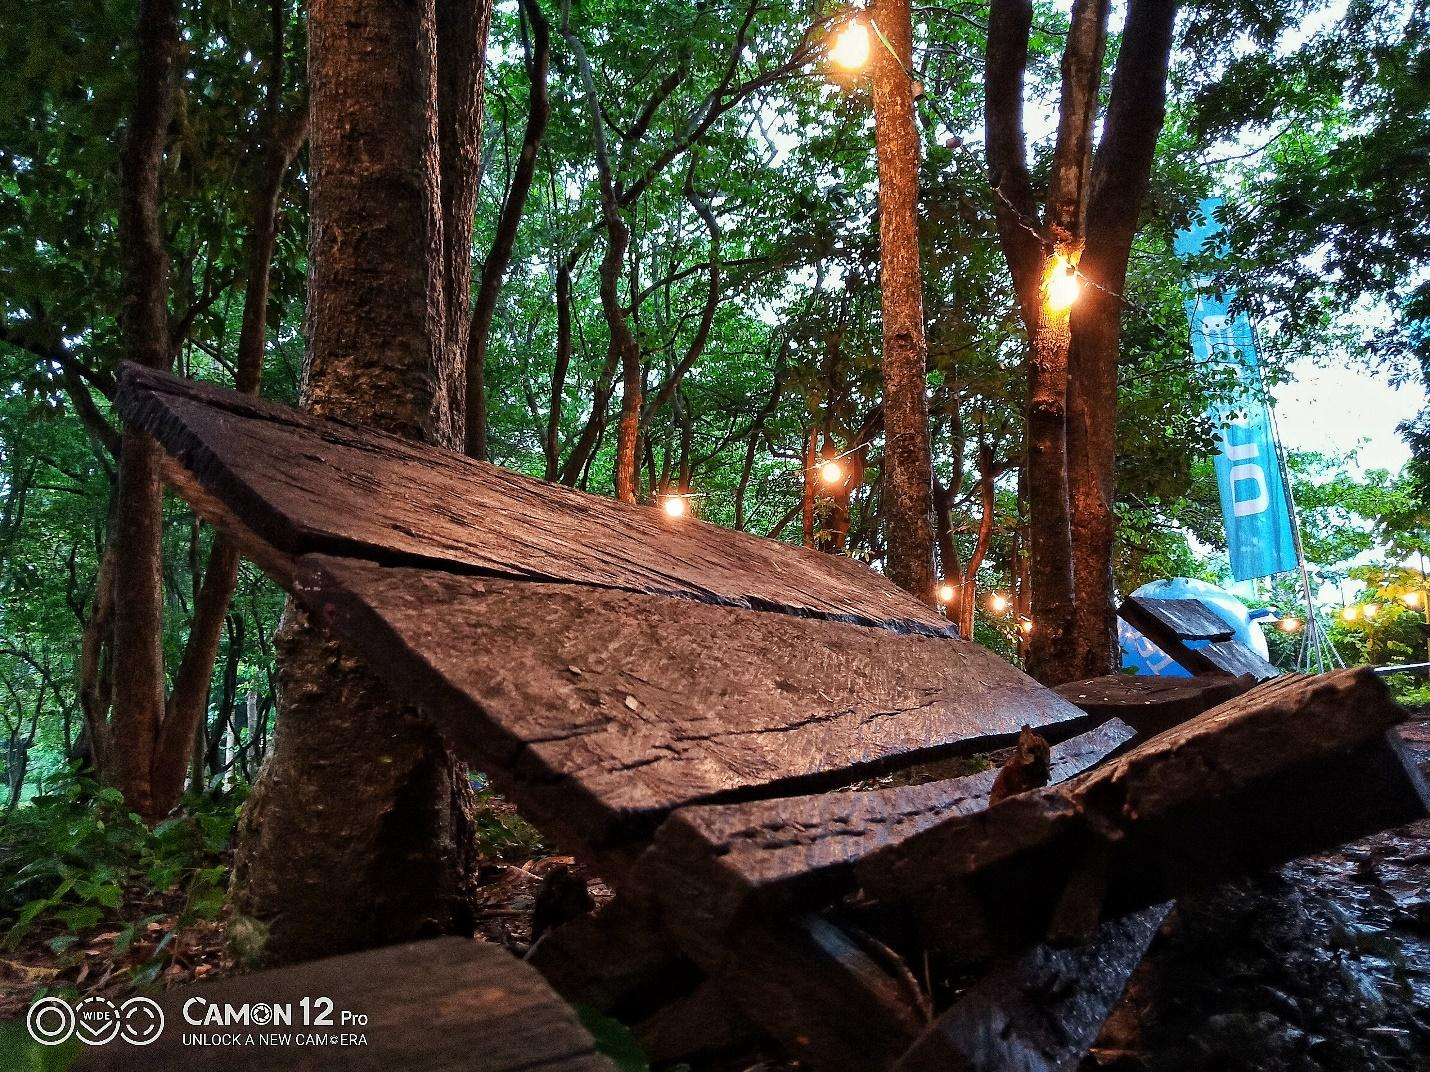 C:\Users\user\Desktop\Camping pictures on Camon 12\Low light.jpg